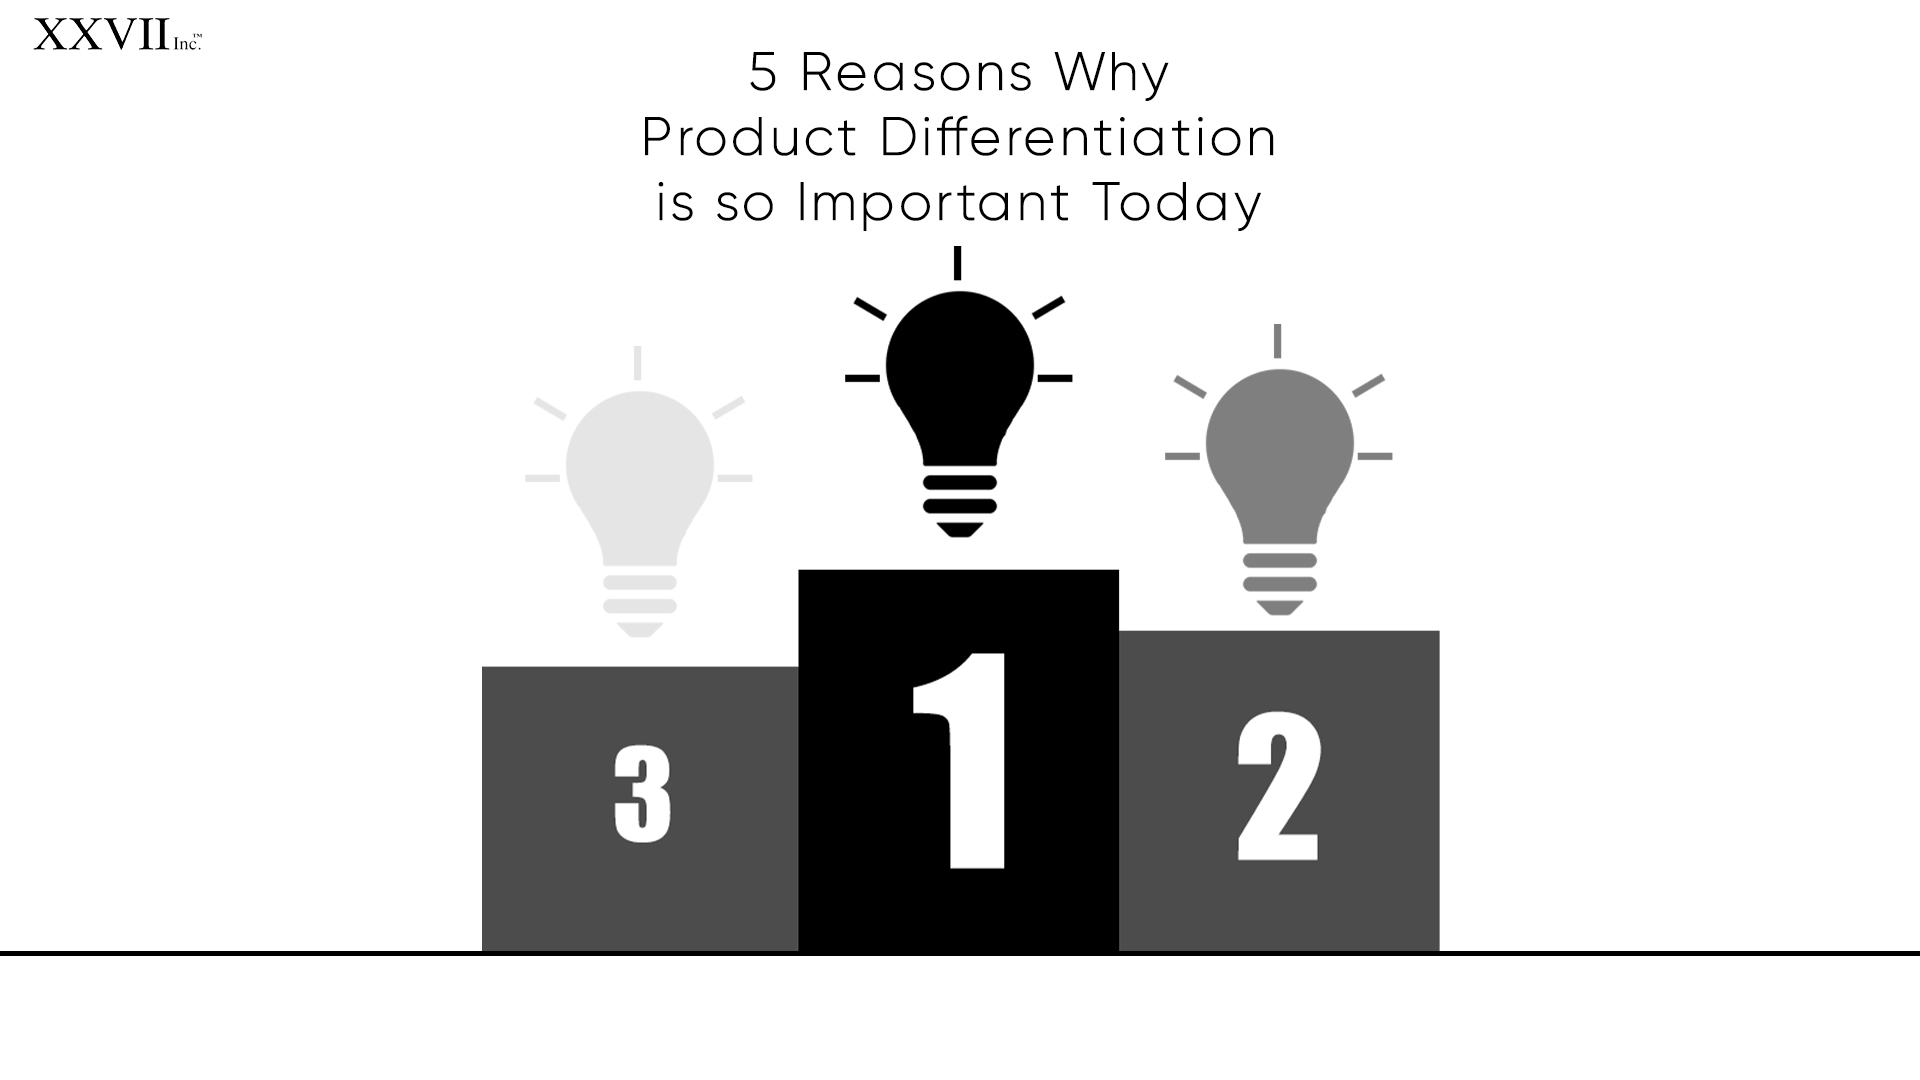 5 Reasons Why Product Differentiation is so Important Today